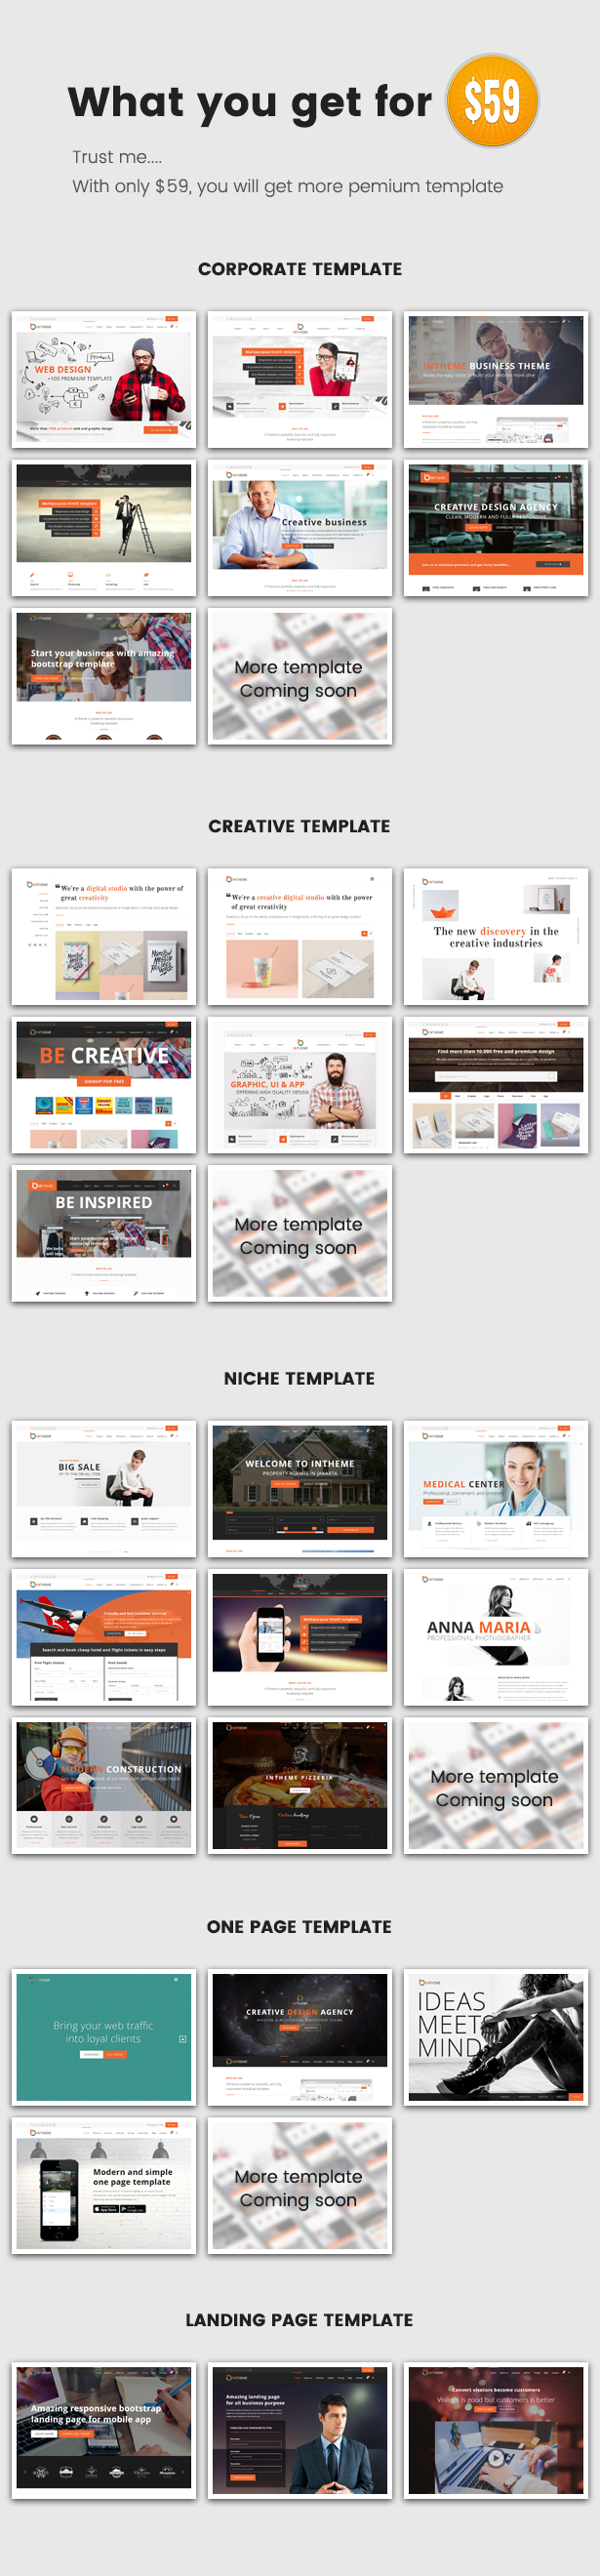 Inspired multipurpose corporate and creative bootstrap wordpress so what are you waiting if inspired able to handle all the needs of the design for multiple projects maxwellsz